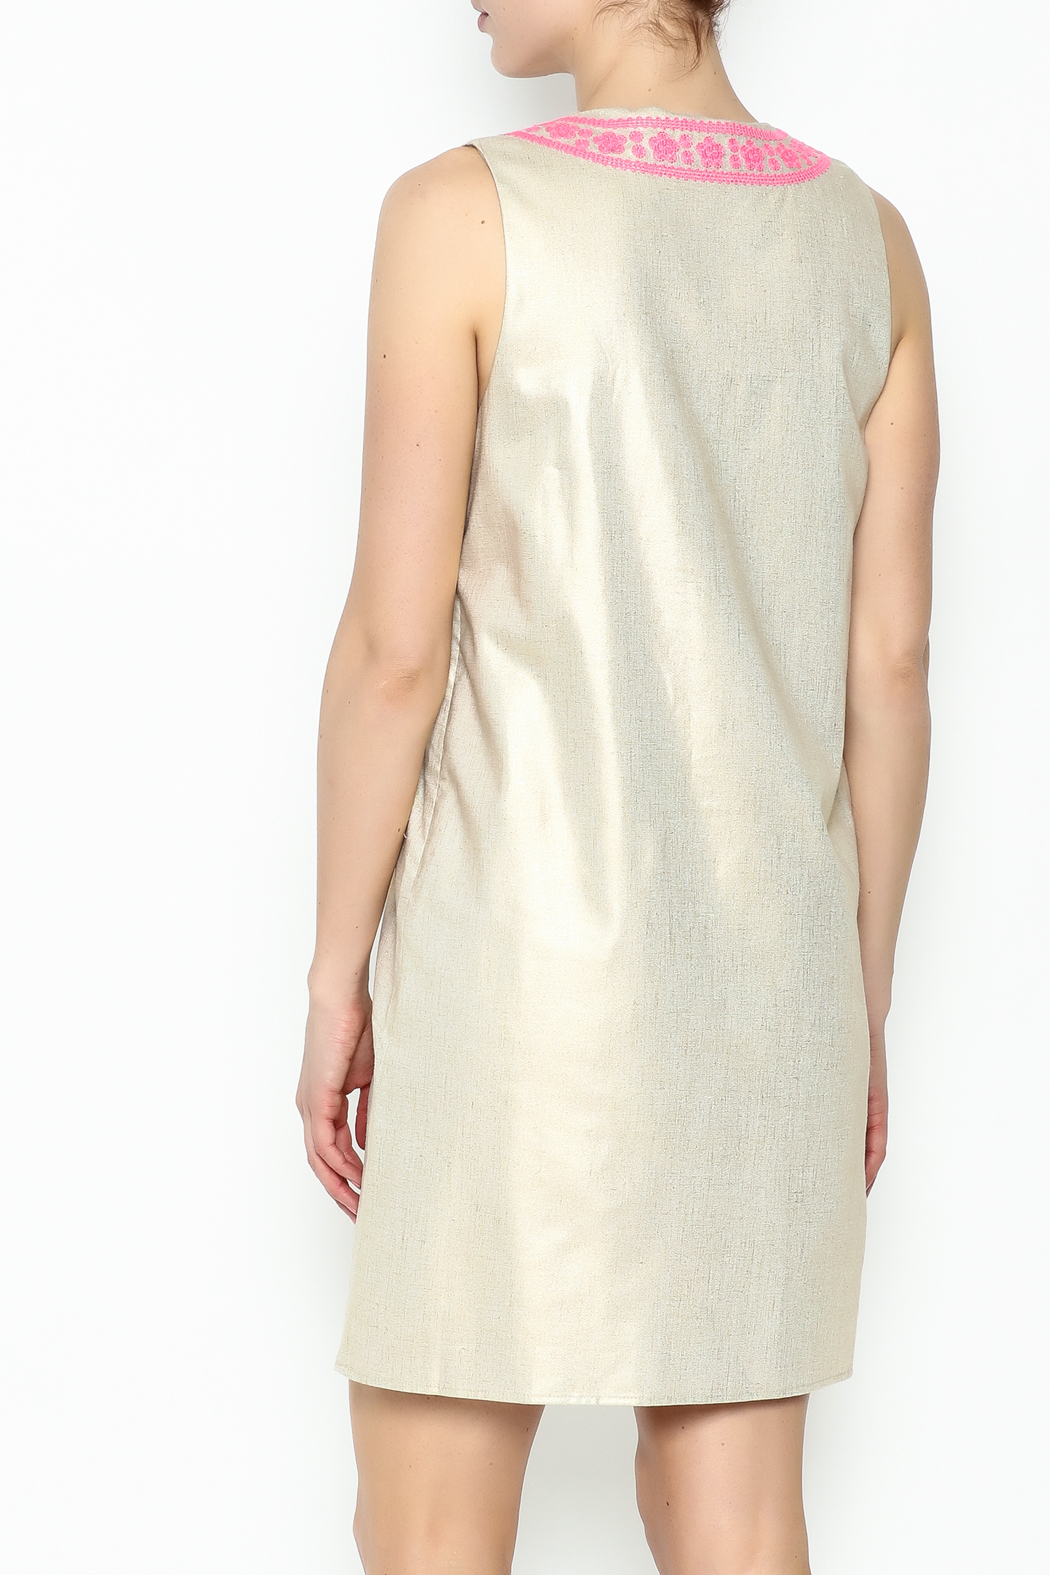 Julie Brown NYC Golden Gate Shift Dress - Back Cropped Image